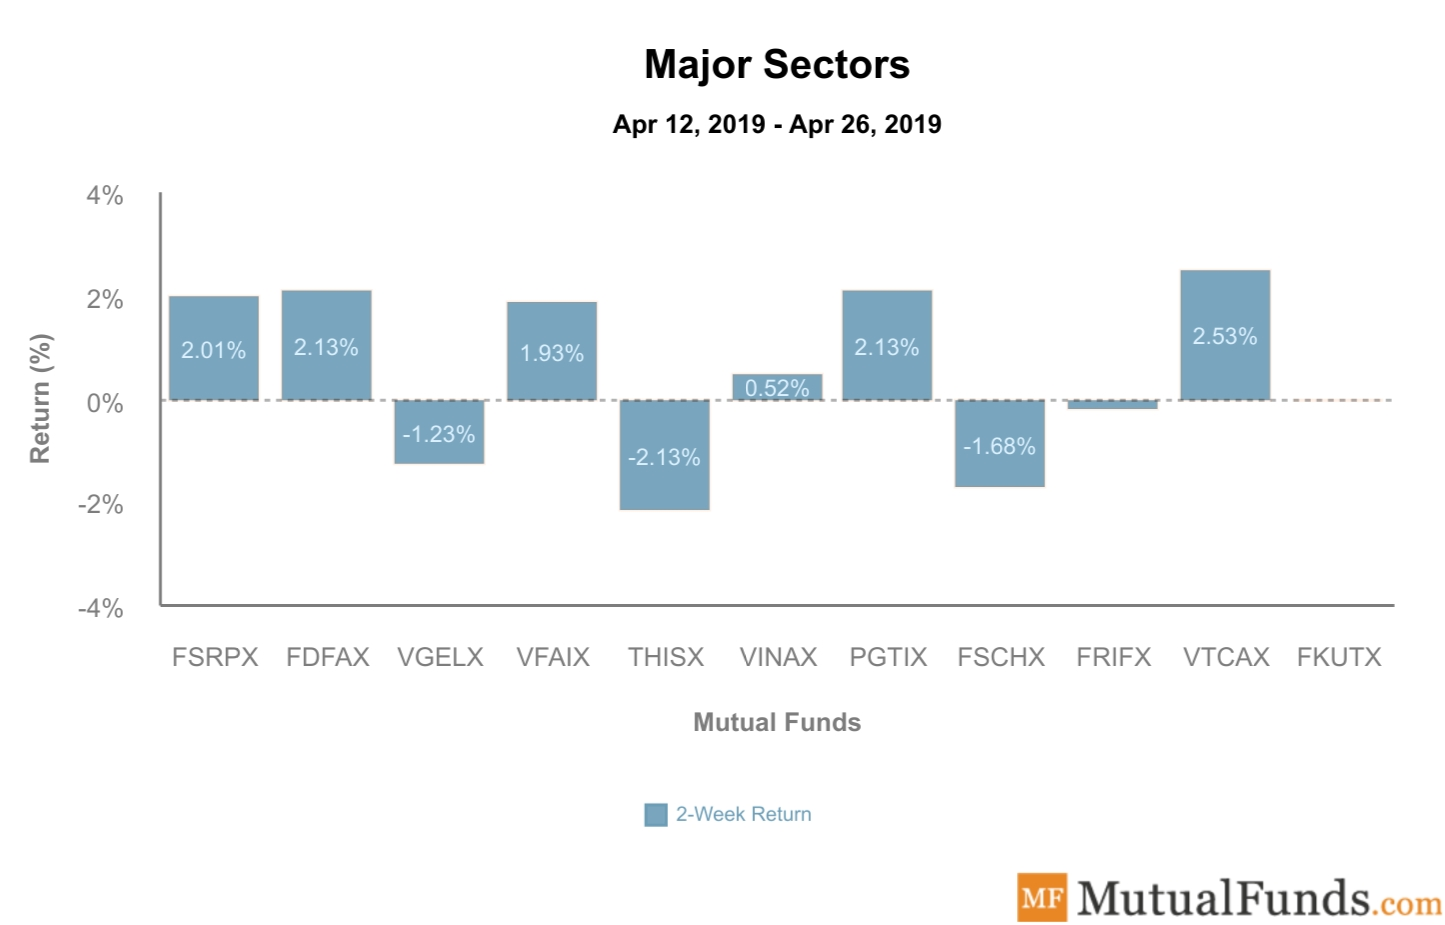 Major Sectors performance April 30